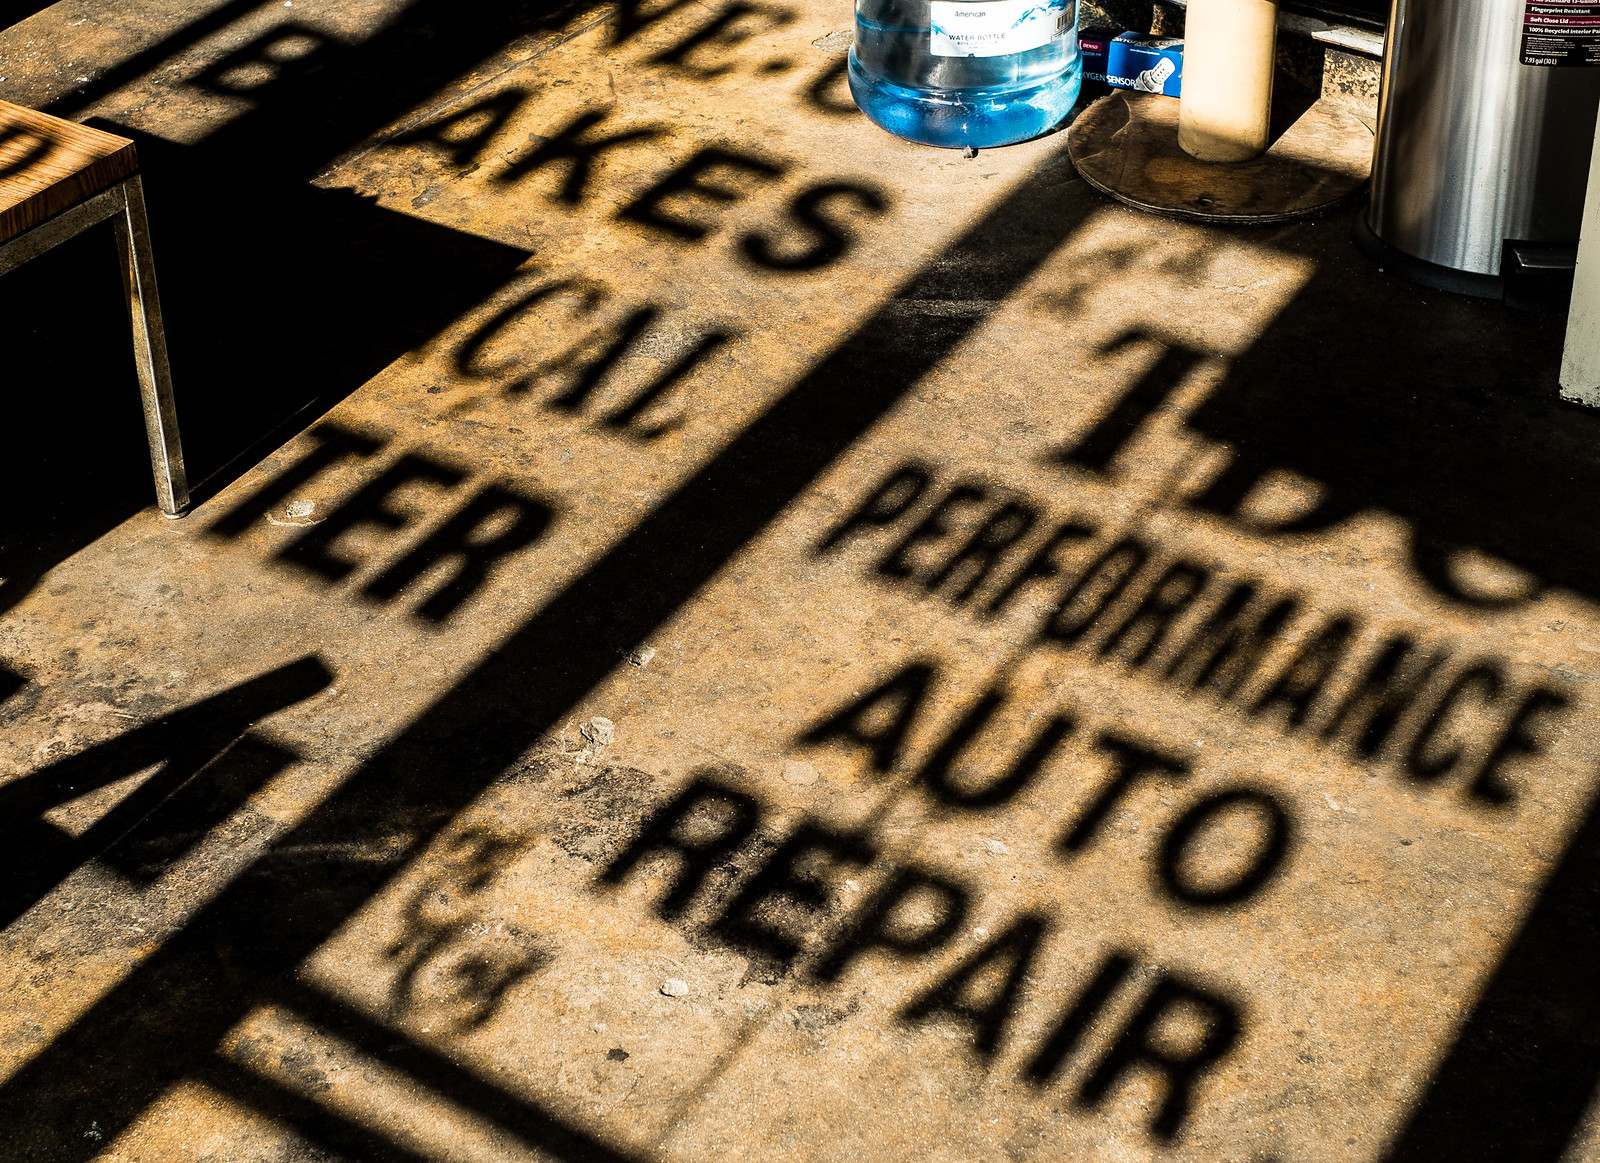 Auto Repair | by michaelj1998